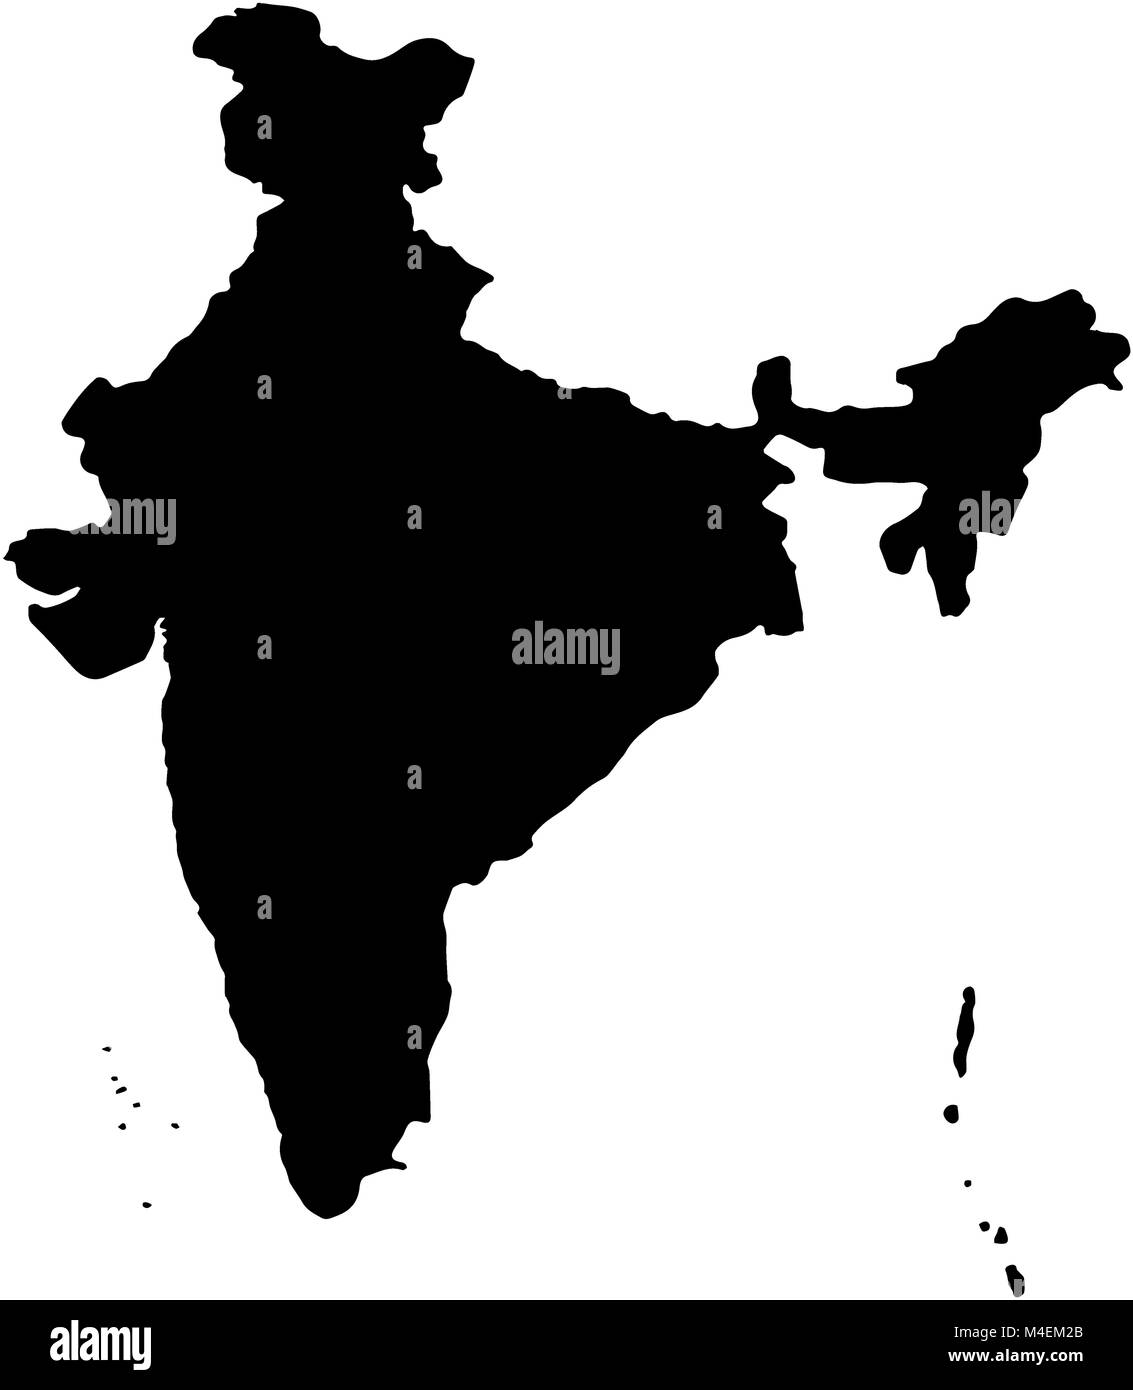 India map black and white stock photos images alamy india country map illustration black stock image gumiabroncs Image collections